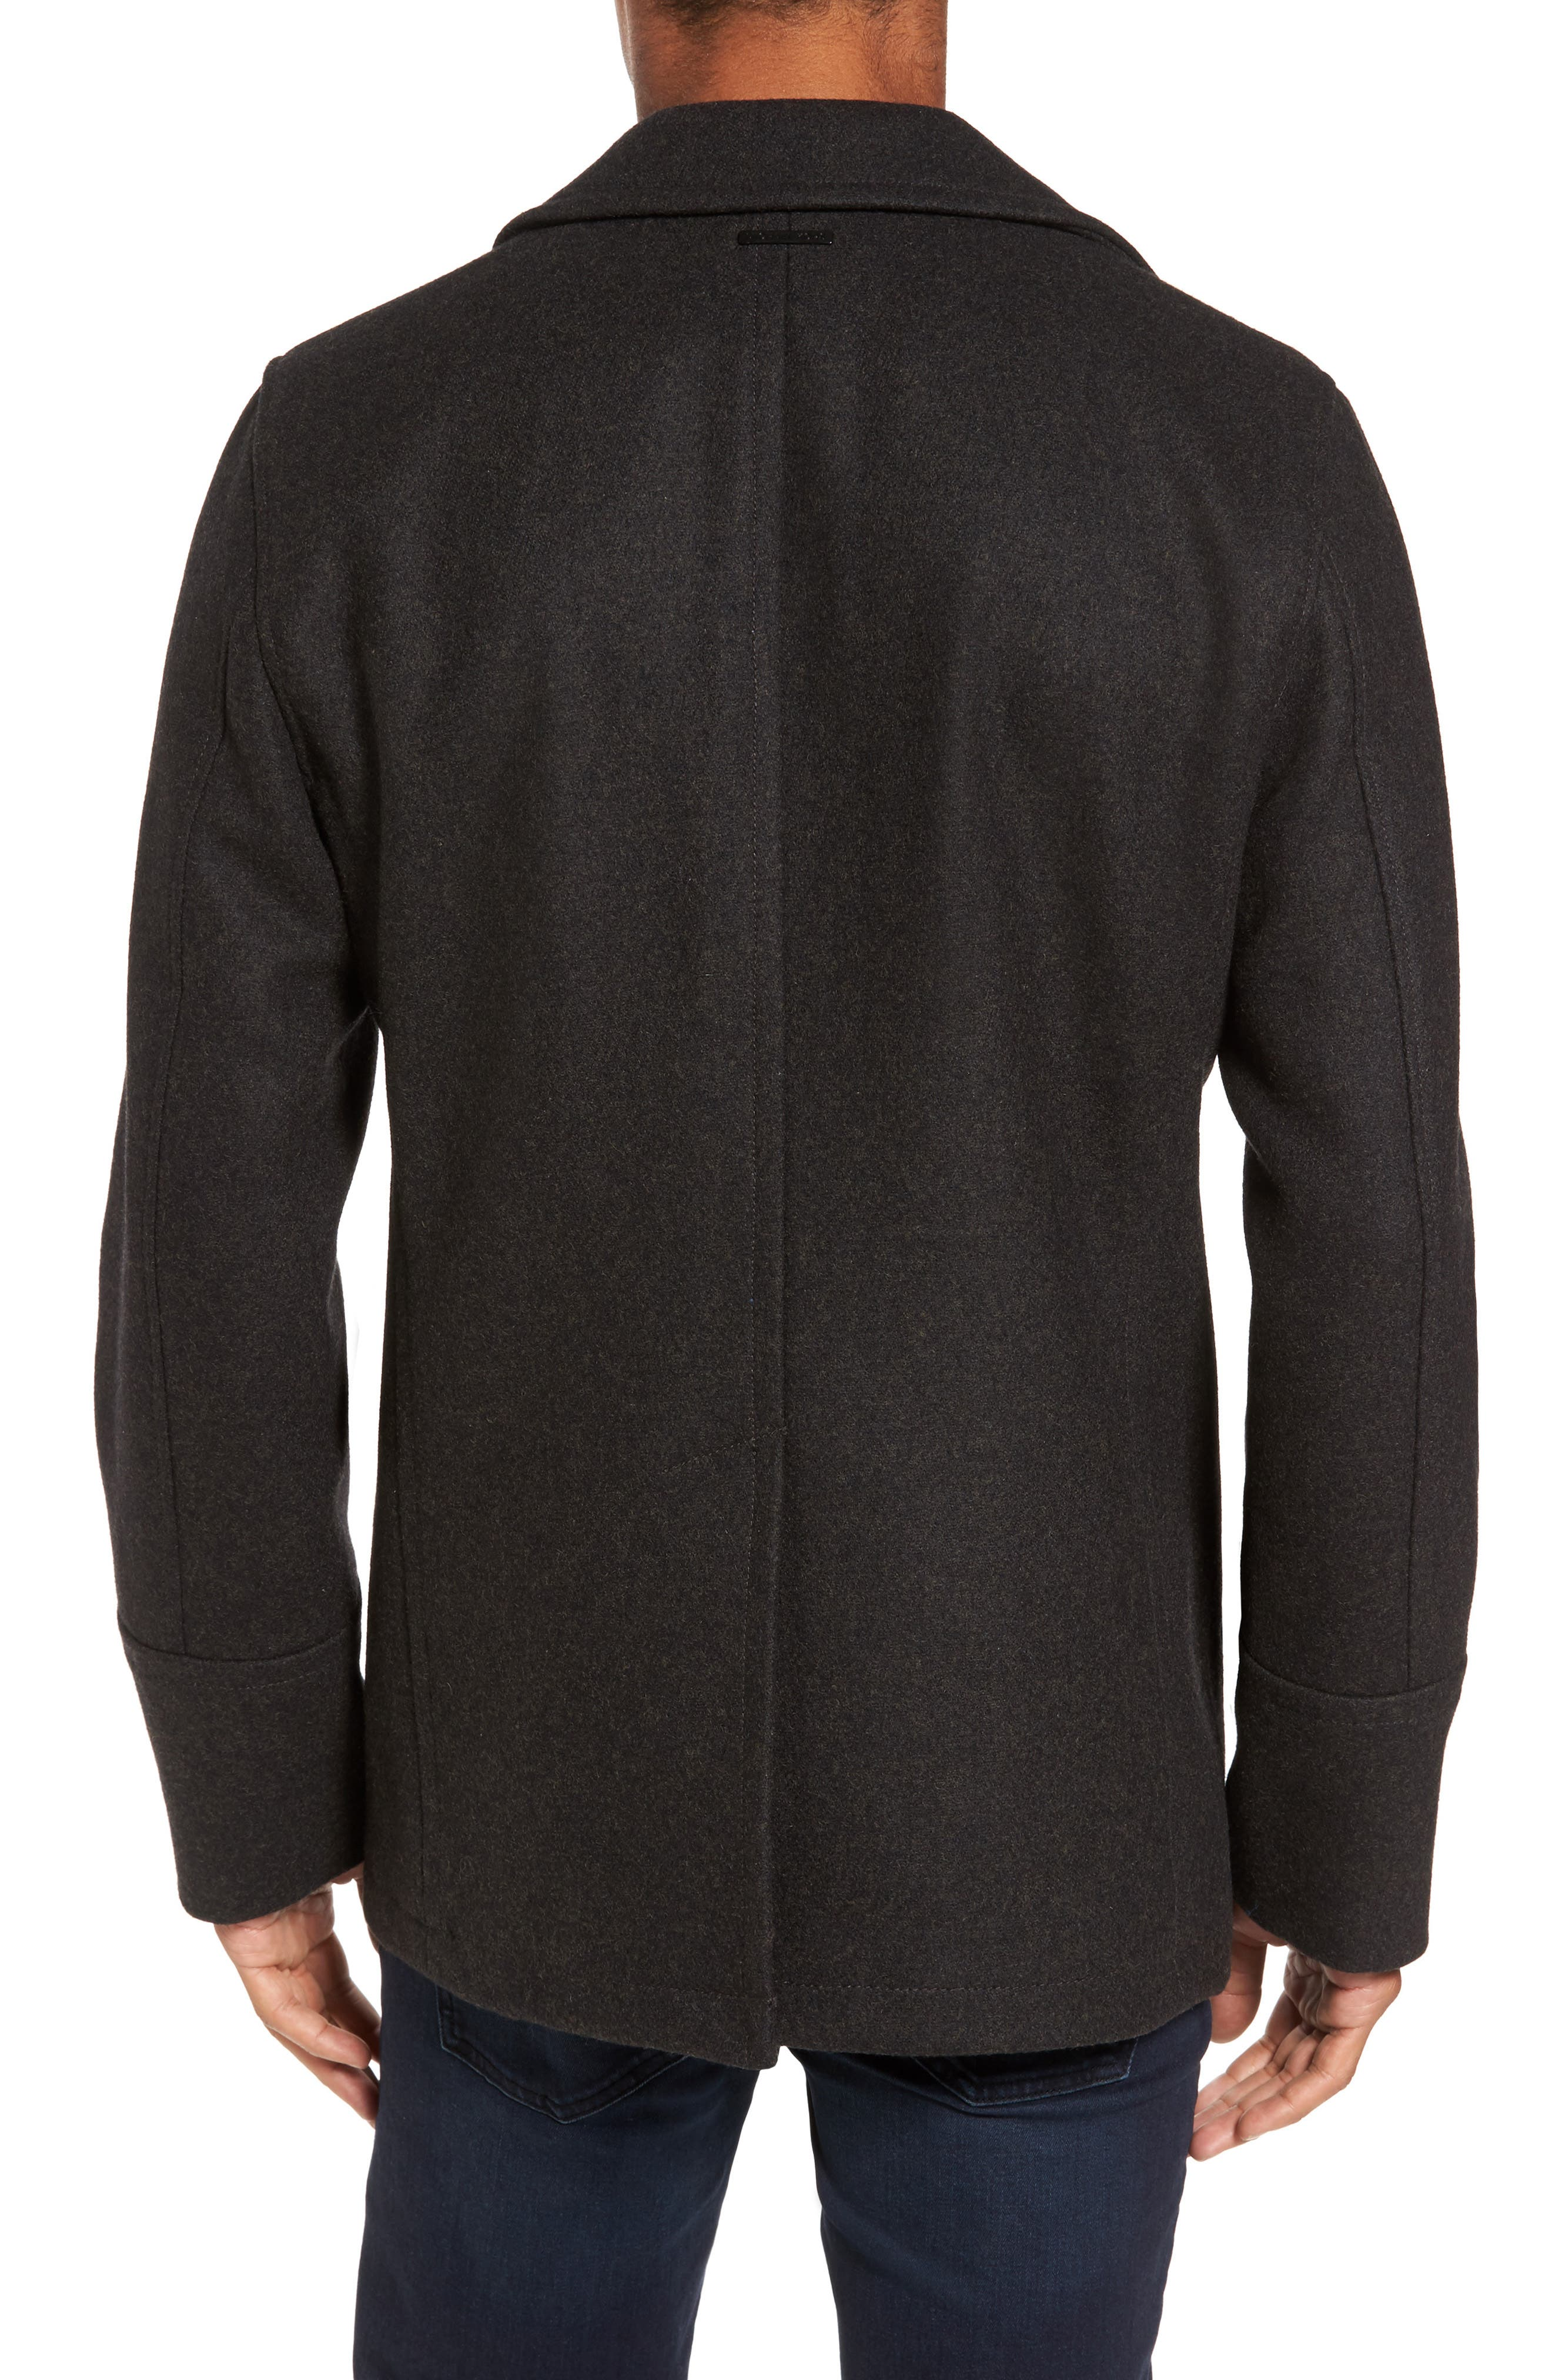 Wool Blend Peacoat,                             Alternate thumbnail 2, color,                             Loden Heather